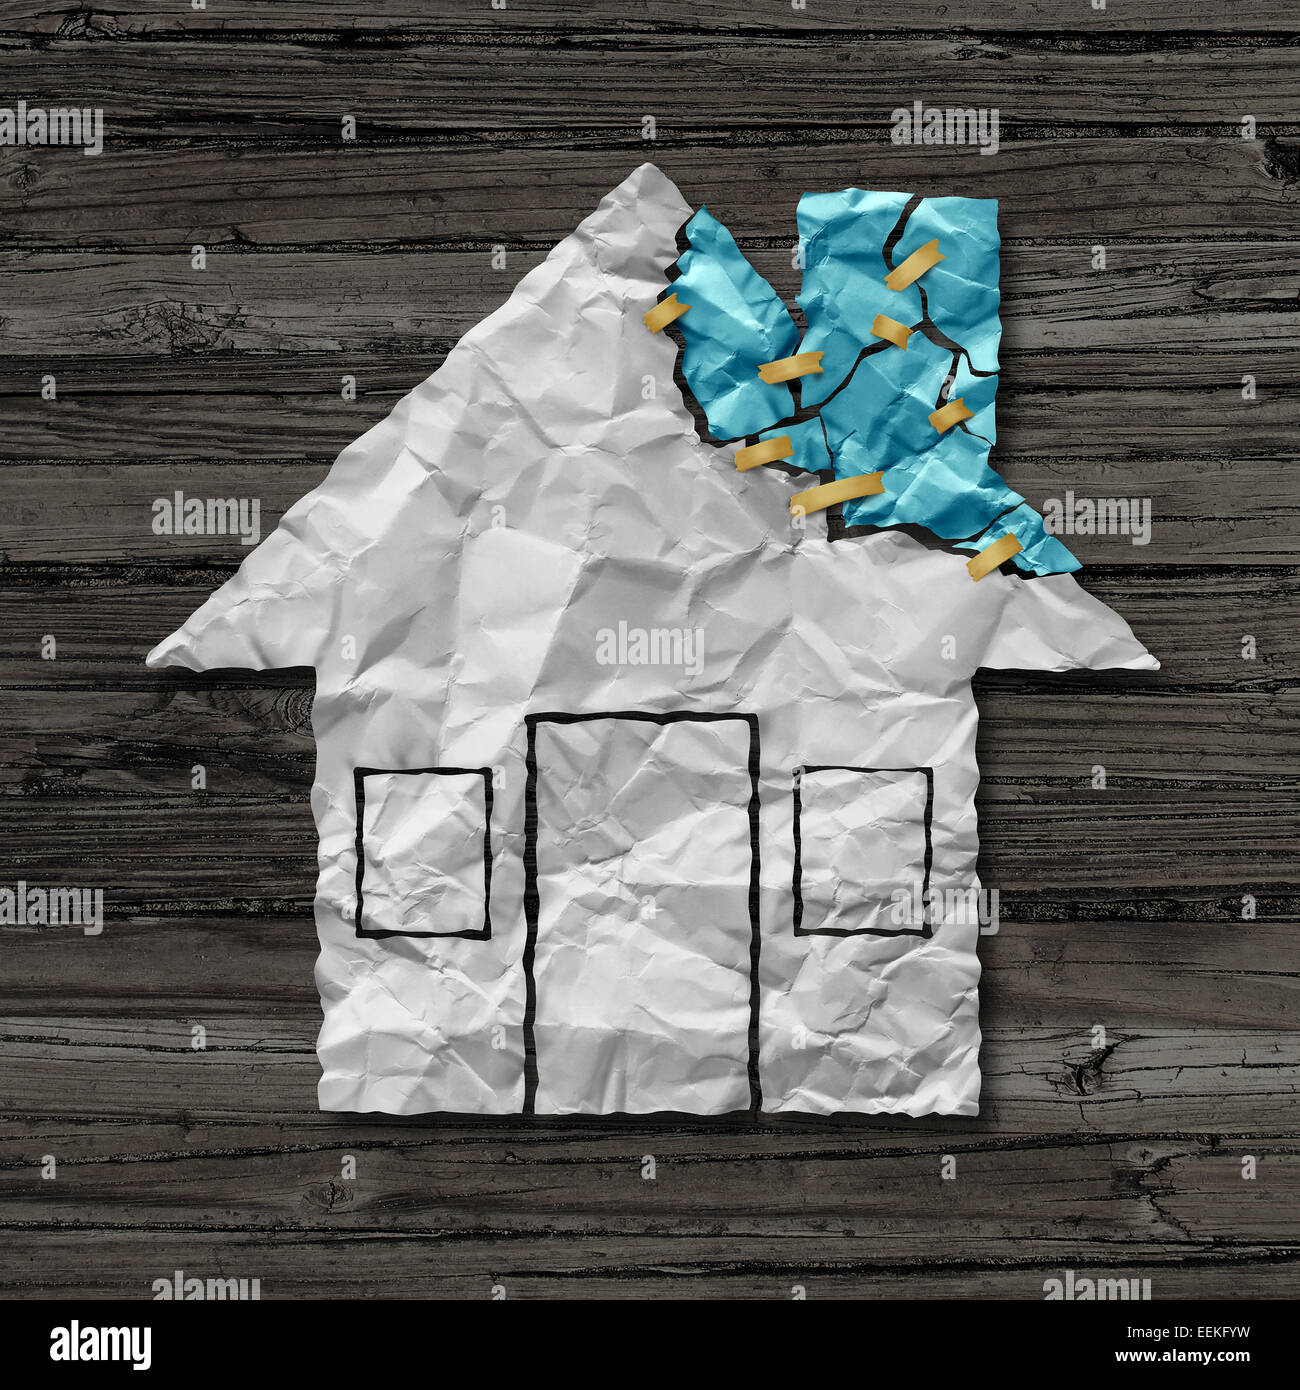 Home repair concept and house improvement symbol as crumpled paper shaped as a residential structure with torn pieces Stock Photo